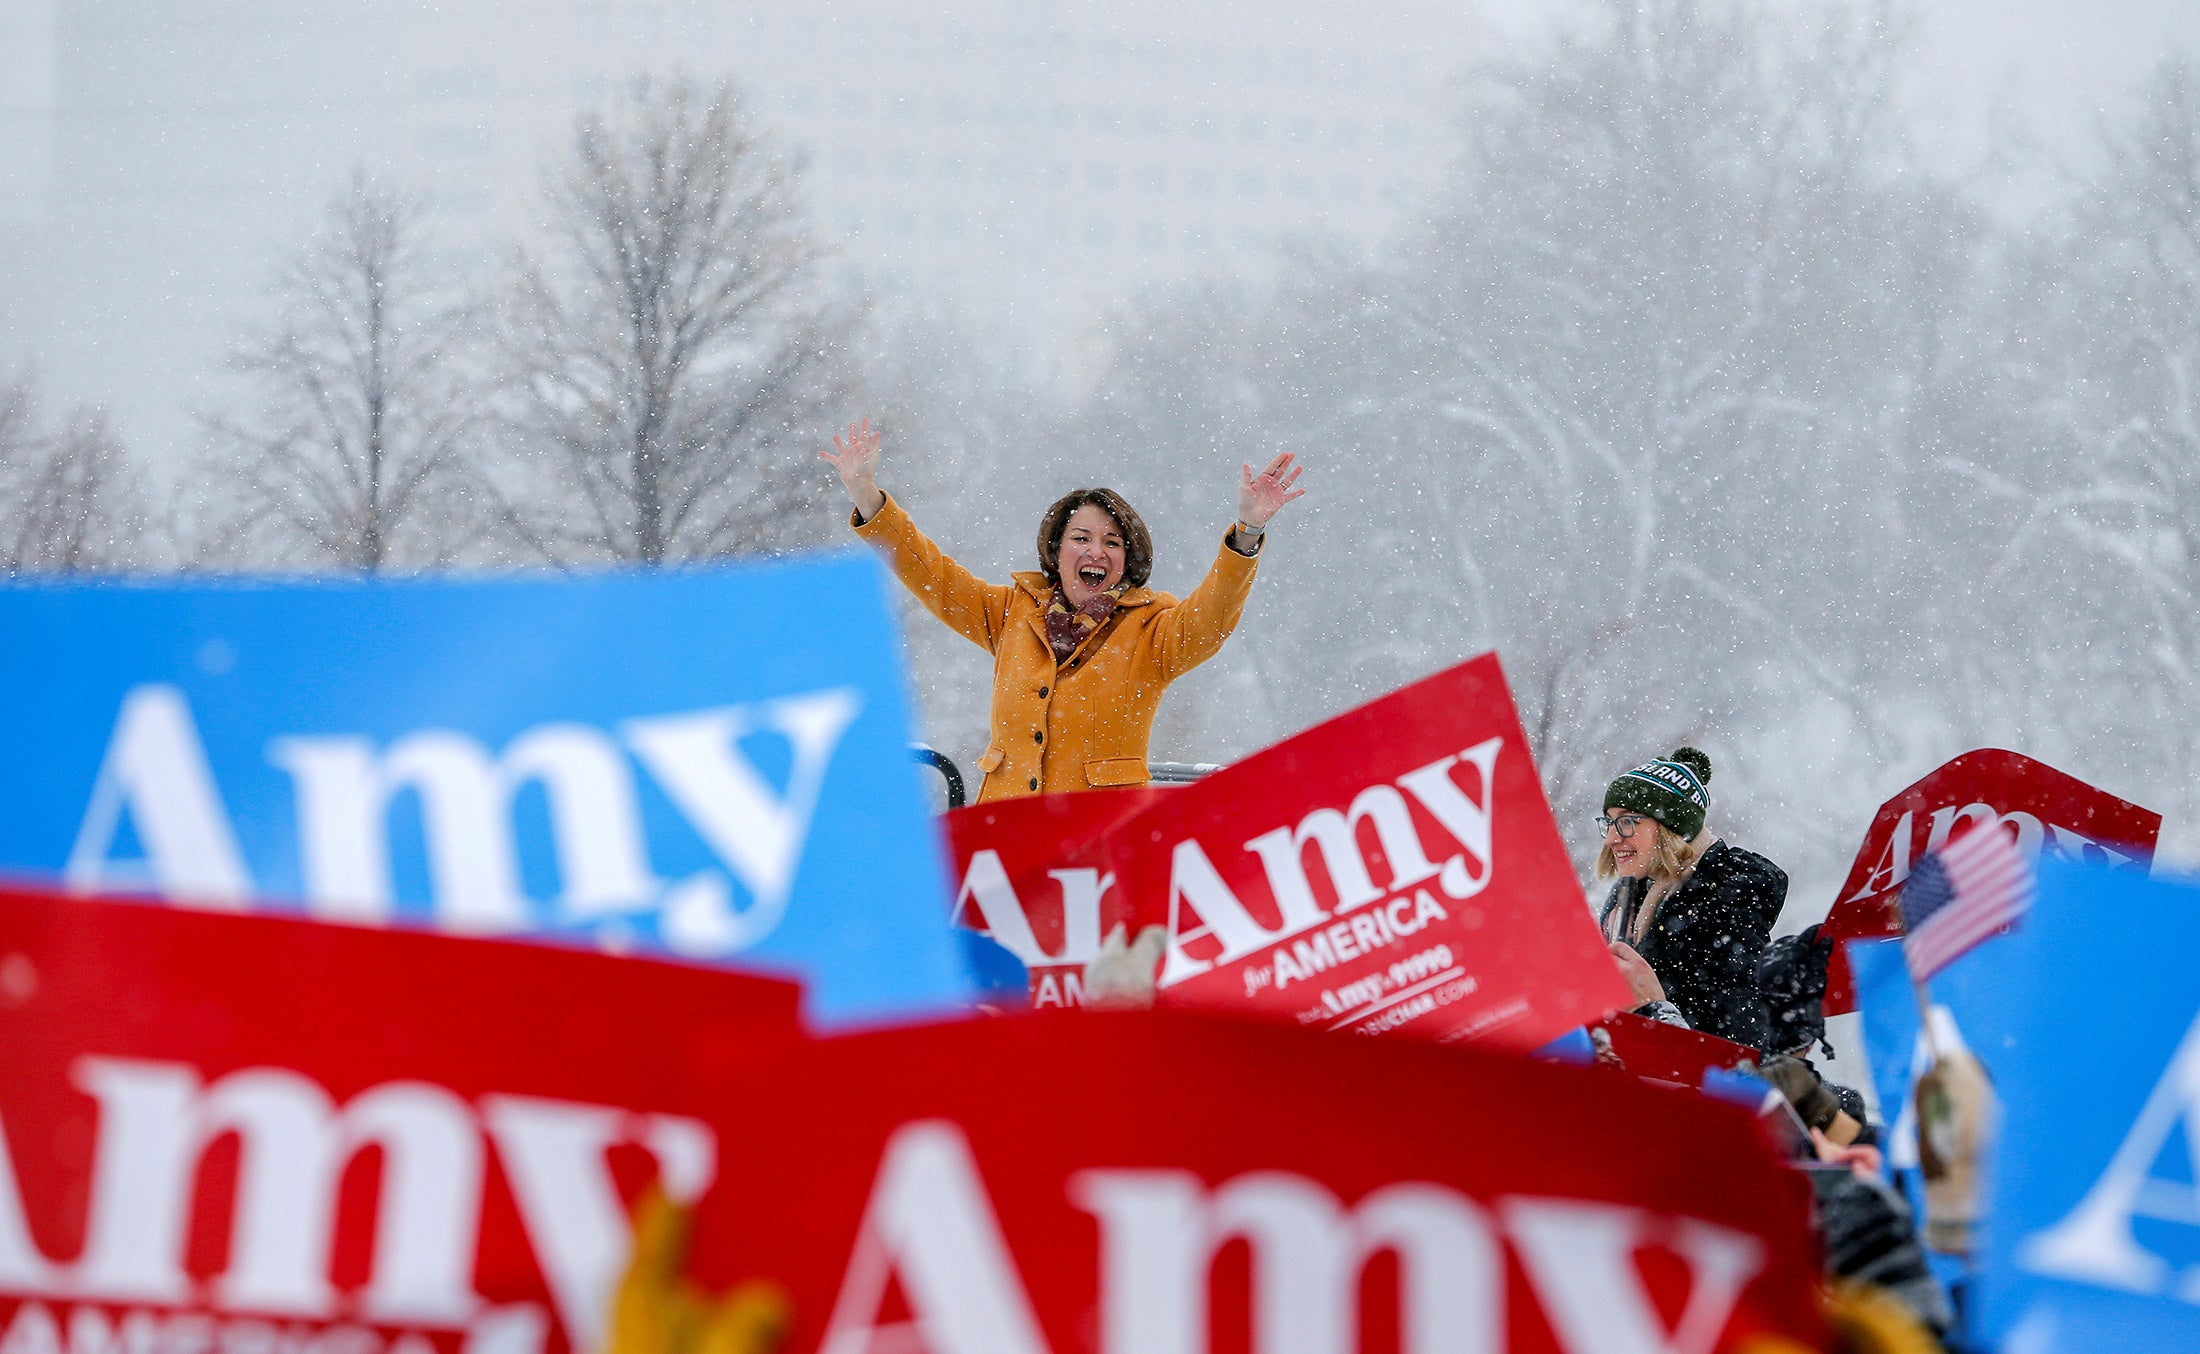 Amy Klobuchar at a snowy campaign rollout